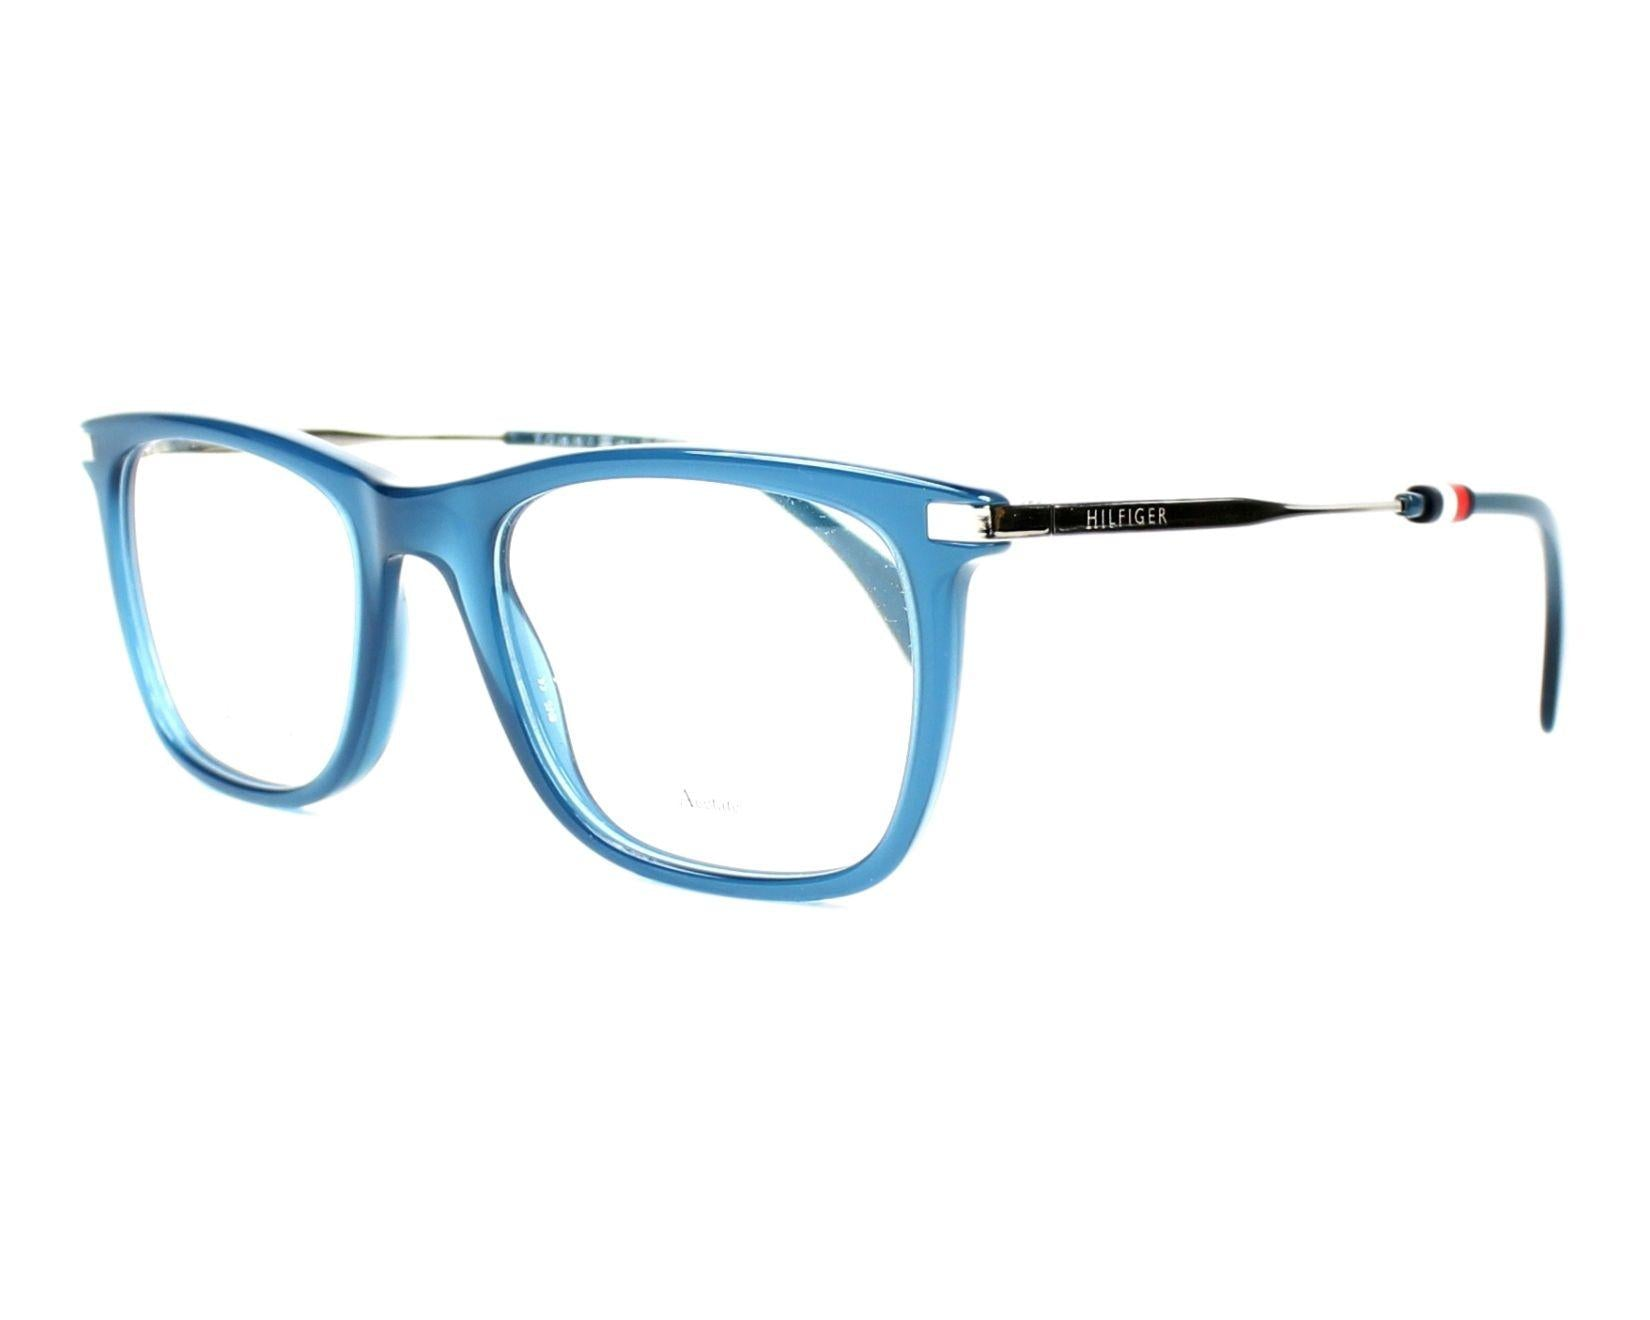 LENTES OFTALMICOS TOMMY HILFIGER TH 1472 PASTA PJP 51-20  145